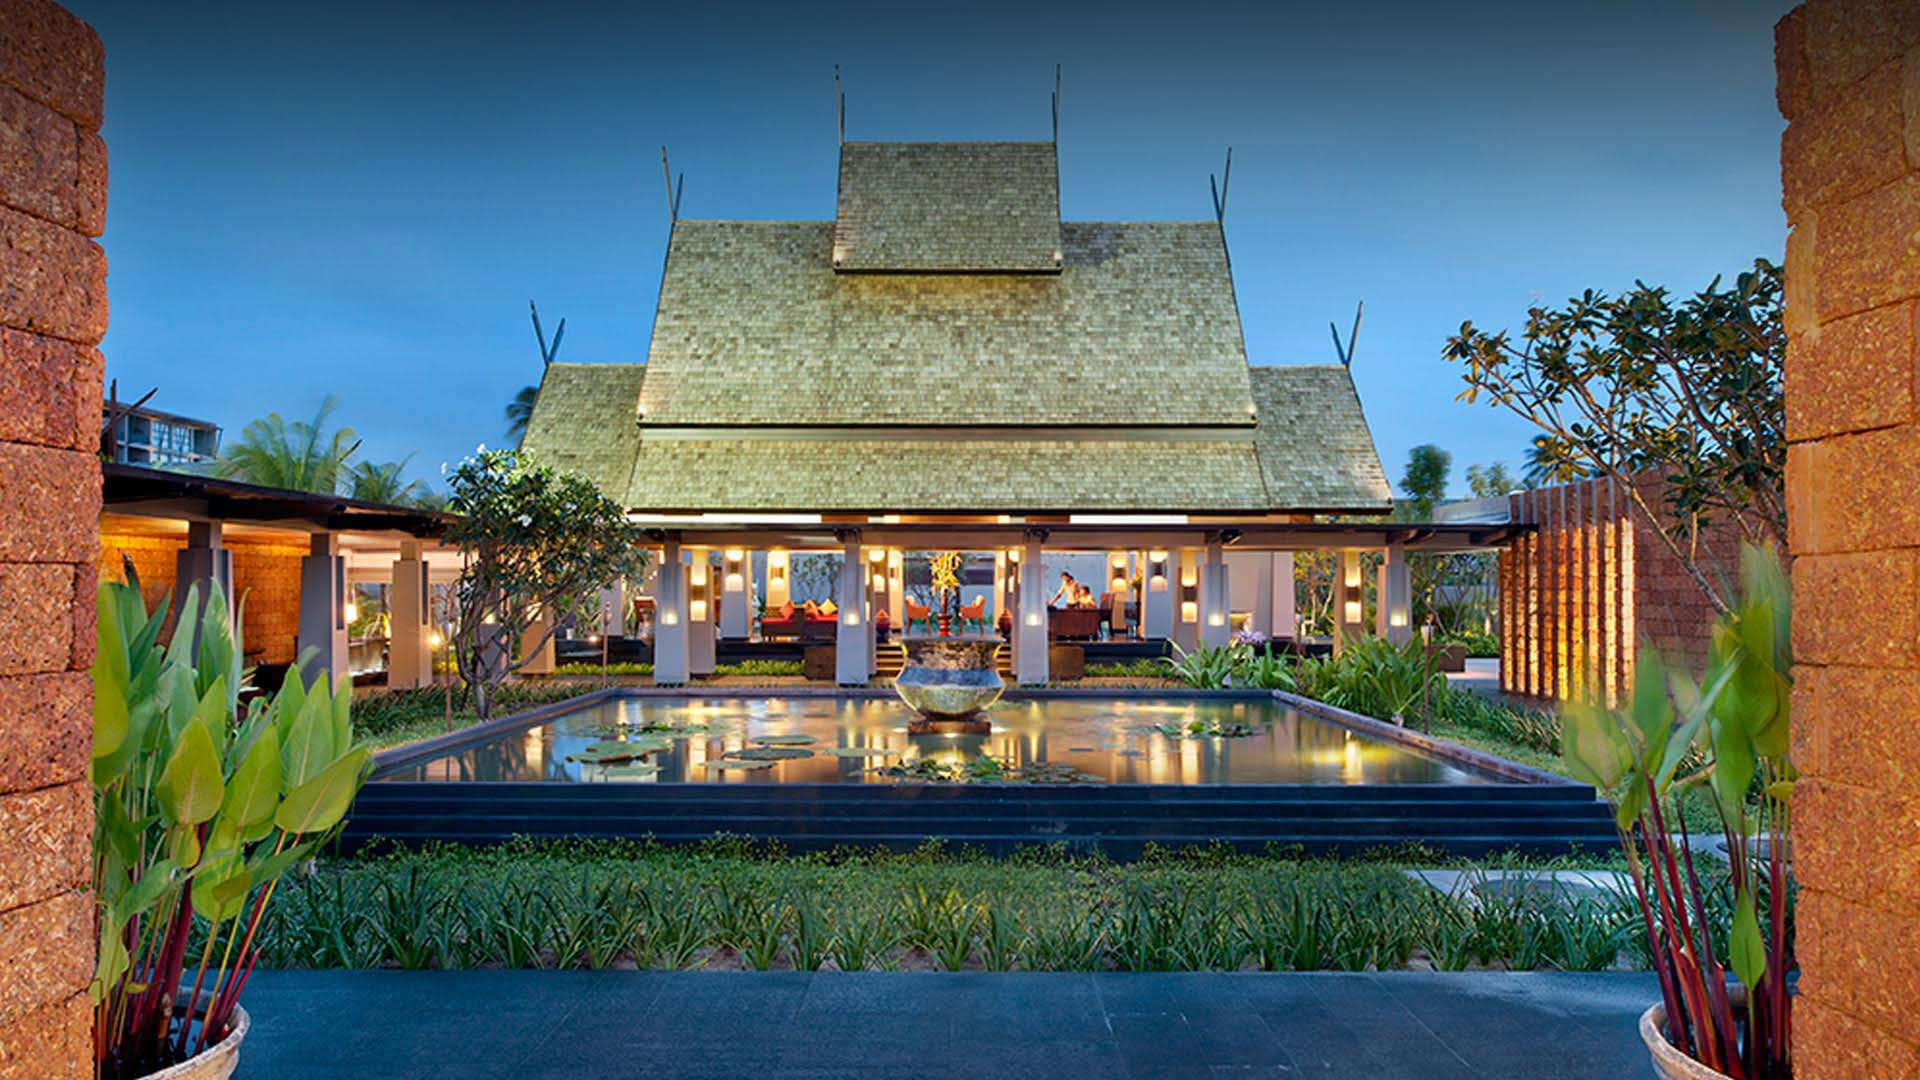 https://assets.anantara.com/image/upload/q_auto/media/minor/anantara/images/anantara-vacation-club-mai-khao-phuket/the-resort/anantara_vacation_club_mai_khao_entrance_header_1920x1080.jpg